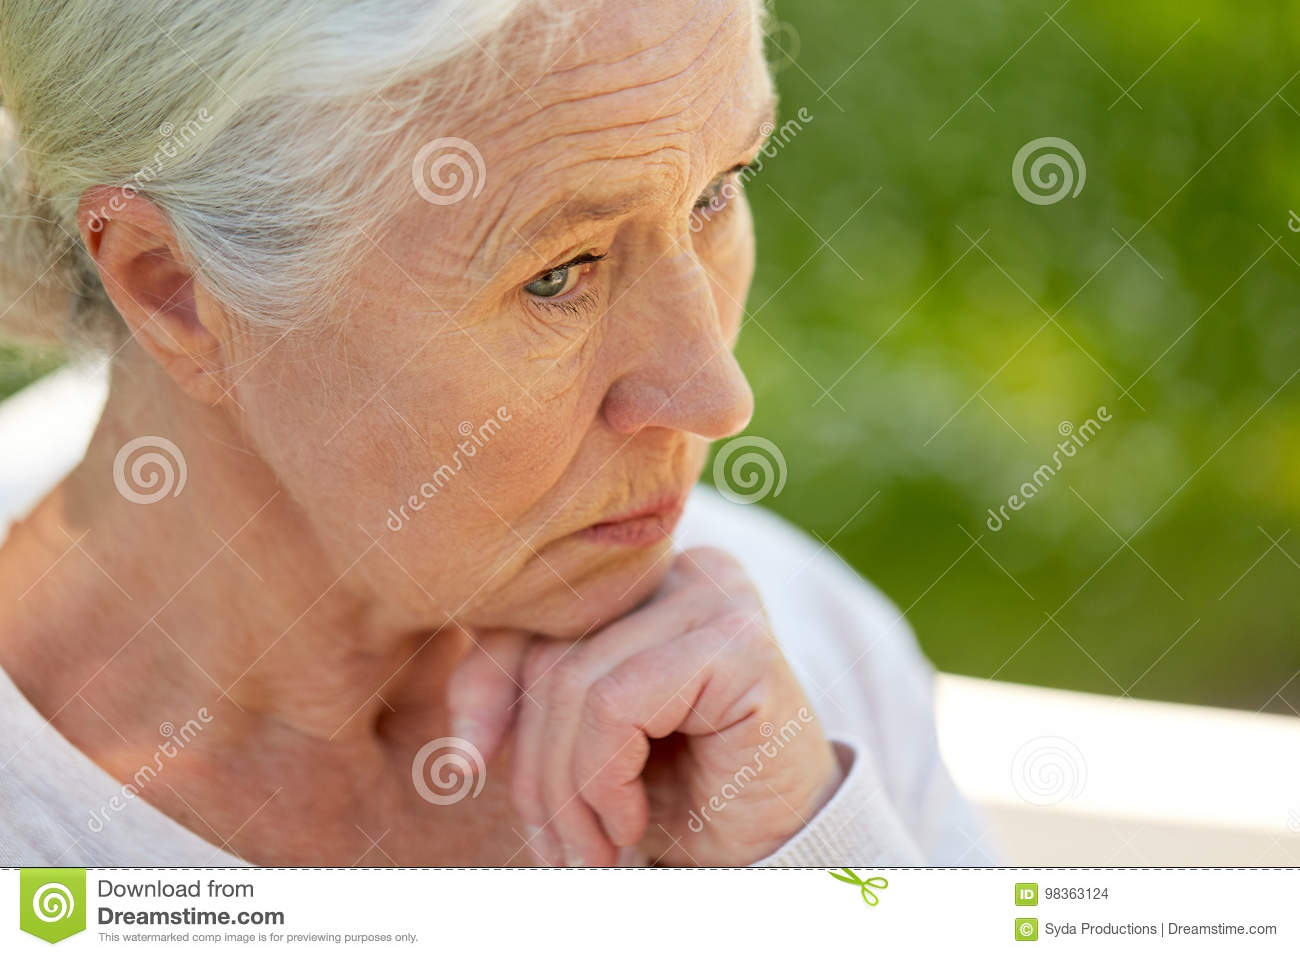 Image of: Photos Old Age Retirement And People Concept Sad Senior Woman In Glasses Sitting On Bench At Summer Park Dreamstimecom Sad Senior Woman Sitting On Bench At Summer Park Stock Photo Image